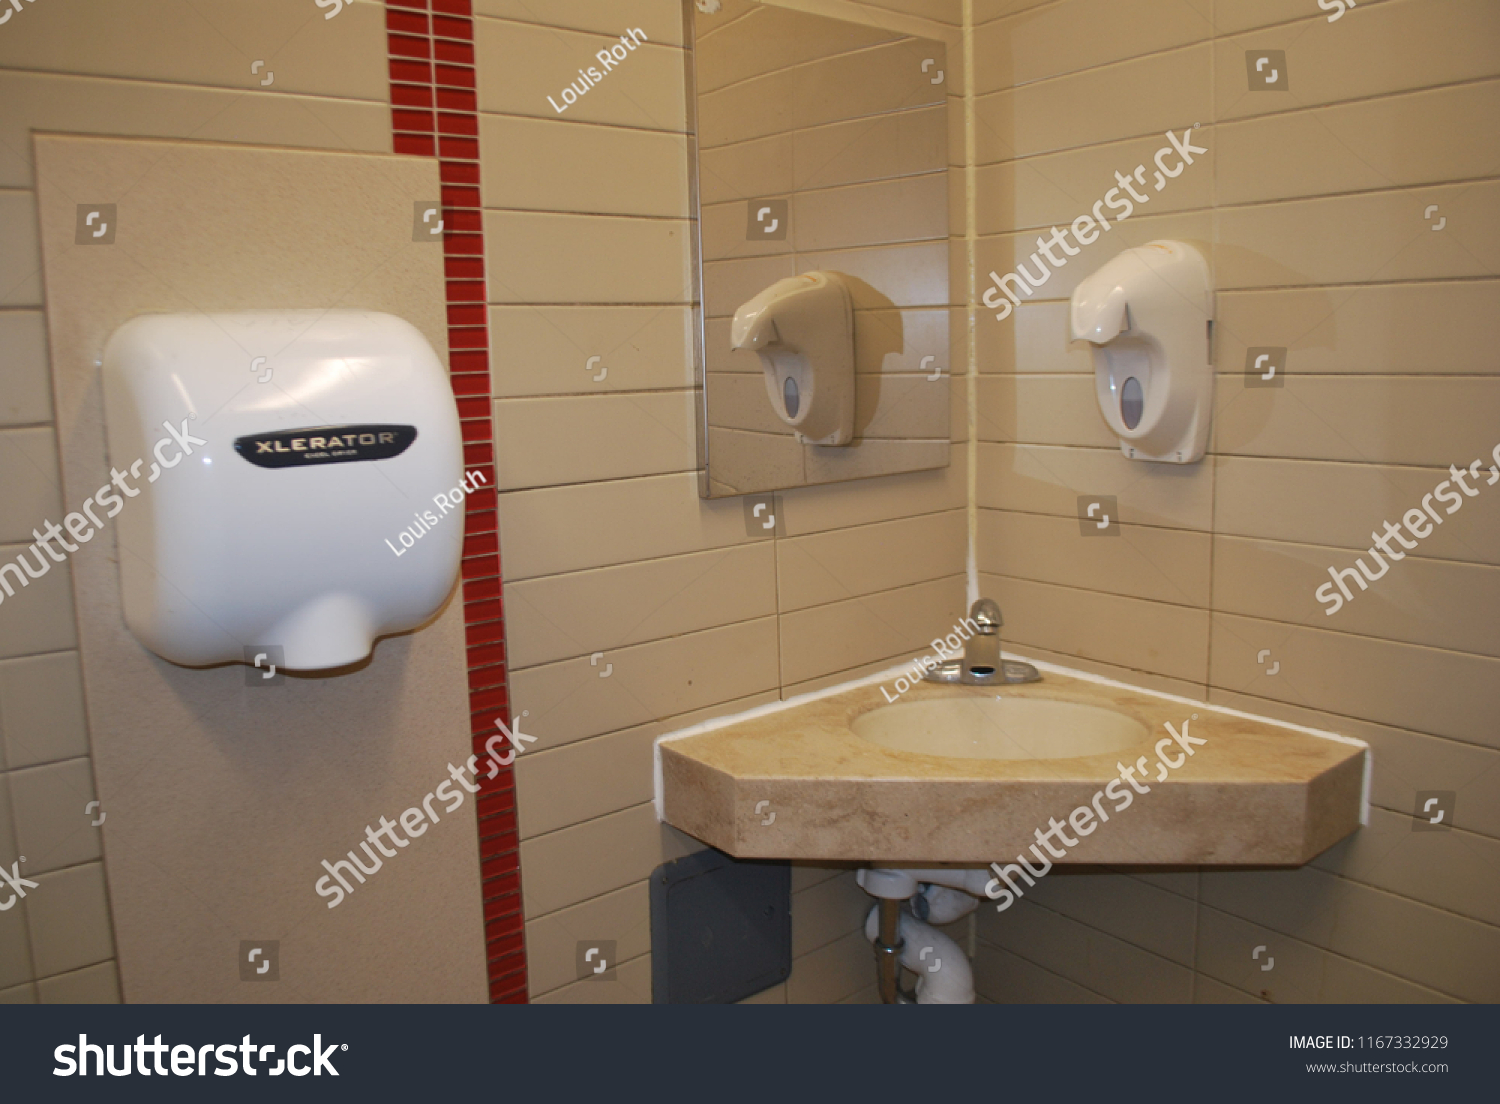 Public Restroom Dirty Toilet Washroom July Stock Photo (Edit Now ...